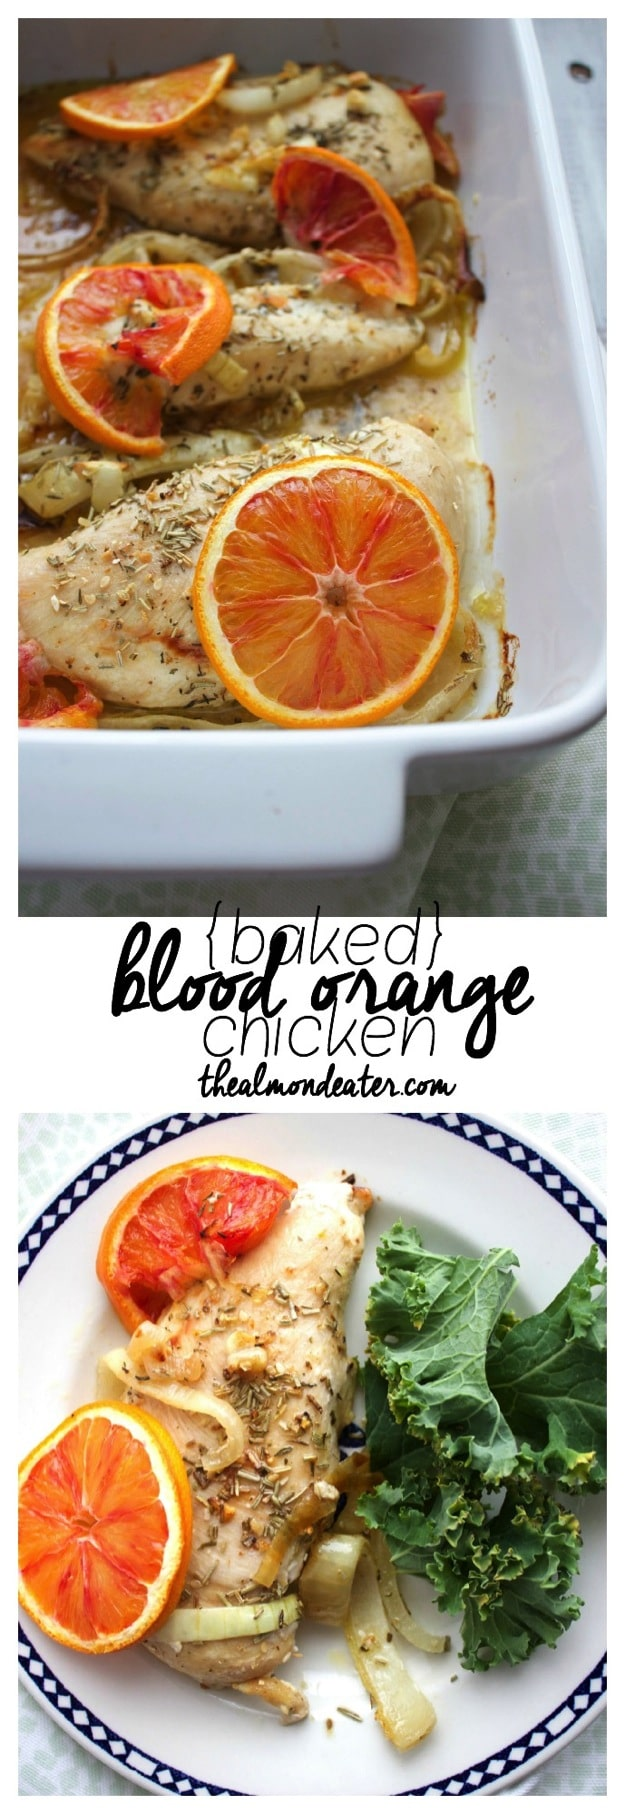 Baked Blood Orange Chicken 123